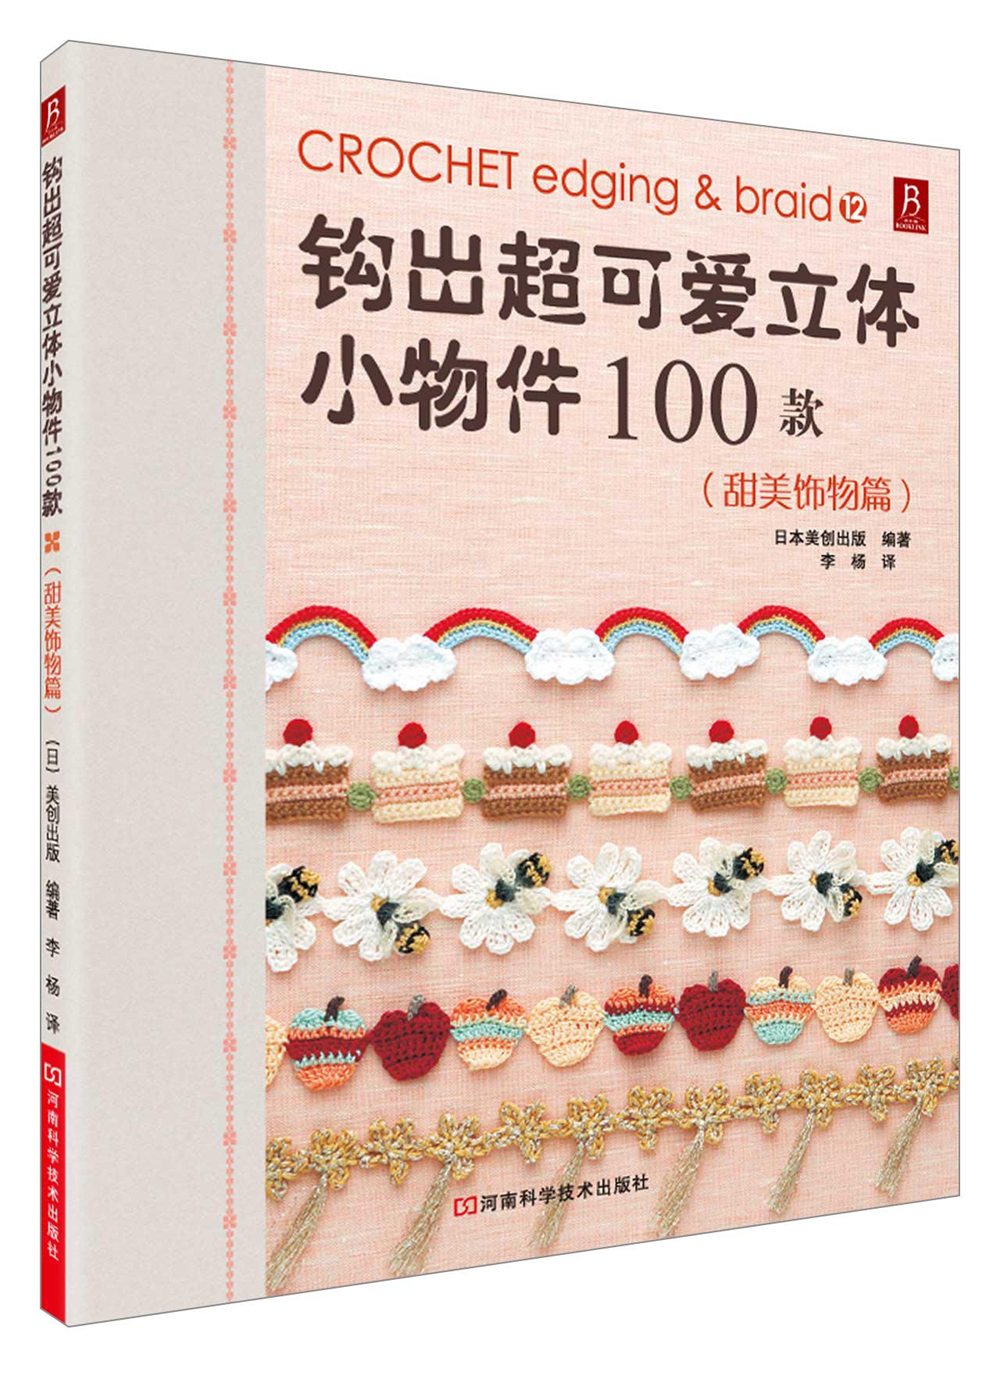 Crochet Edging&Braid / Weaving super-cute 3d small objects 100 models Chinese knitting book / Japanese Handmade Carft Book crochet the cute mini small animal handbook wool doll japanese knitting book with picture